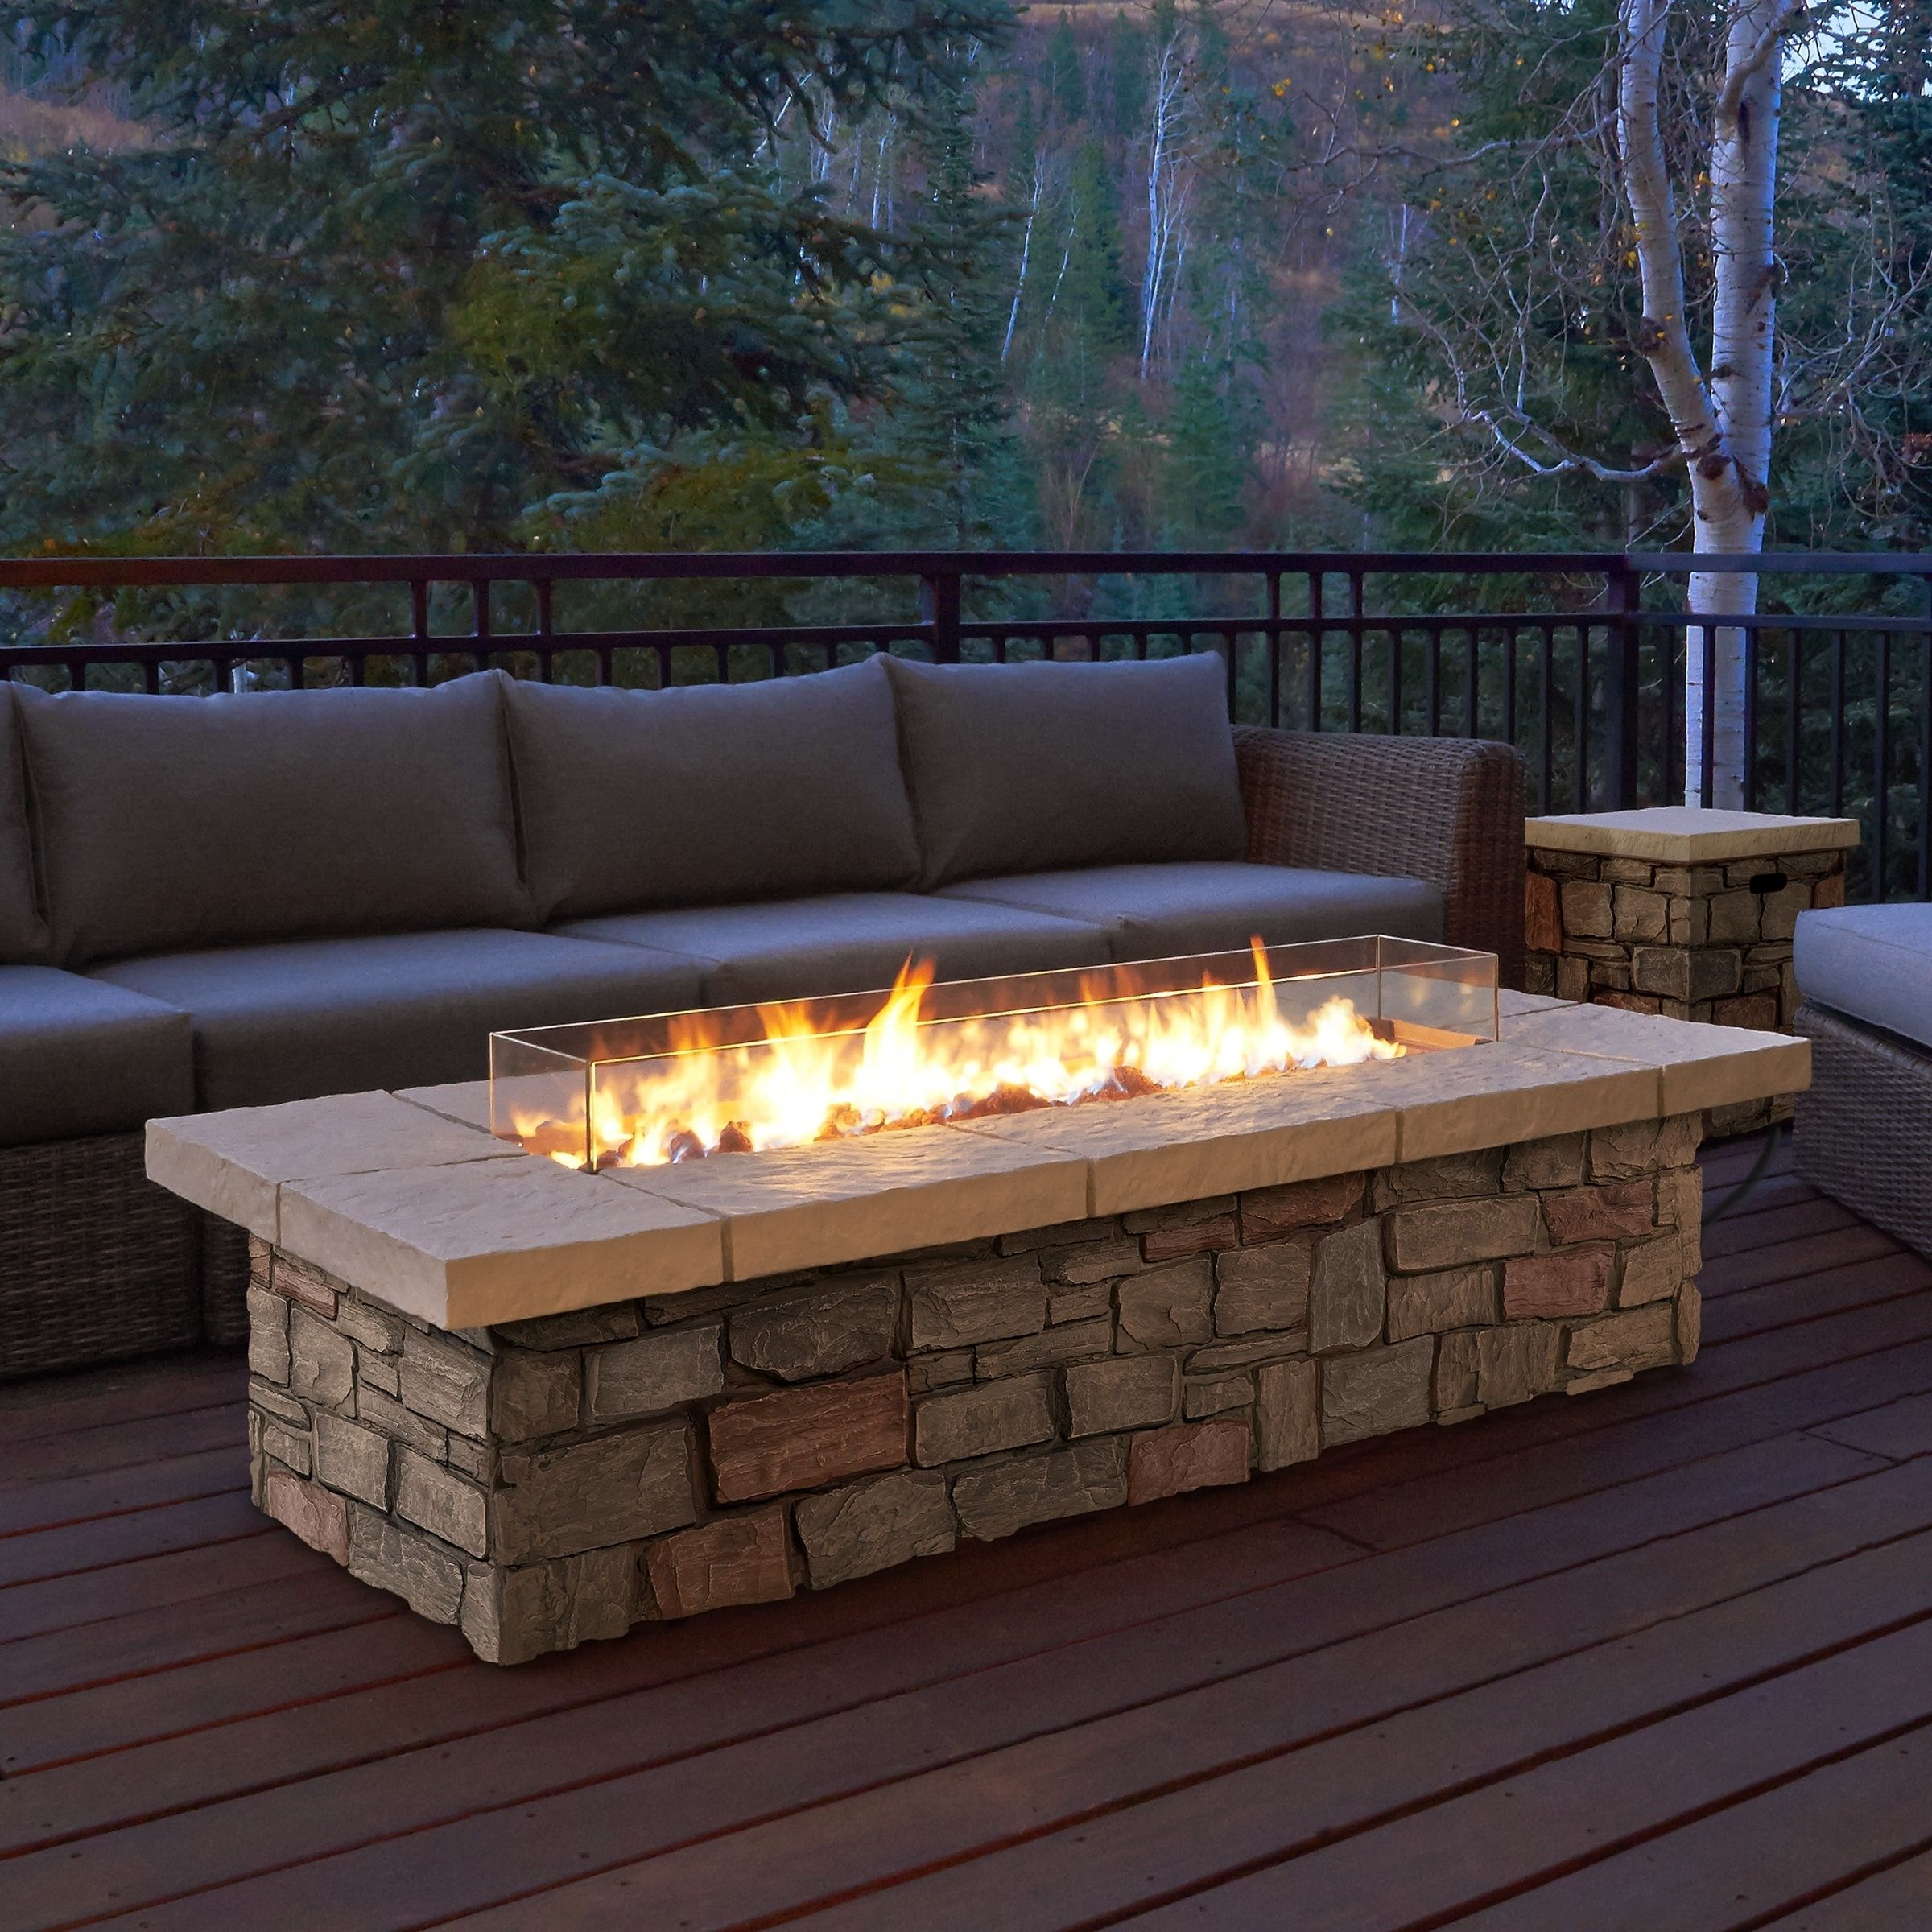 Overstock Com Online Shopping Bedding Furniture Electronics Jewelry Clothing More Backyard Fire Propane Fire Pit Table Fire Pit Backyard